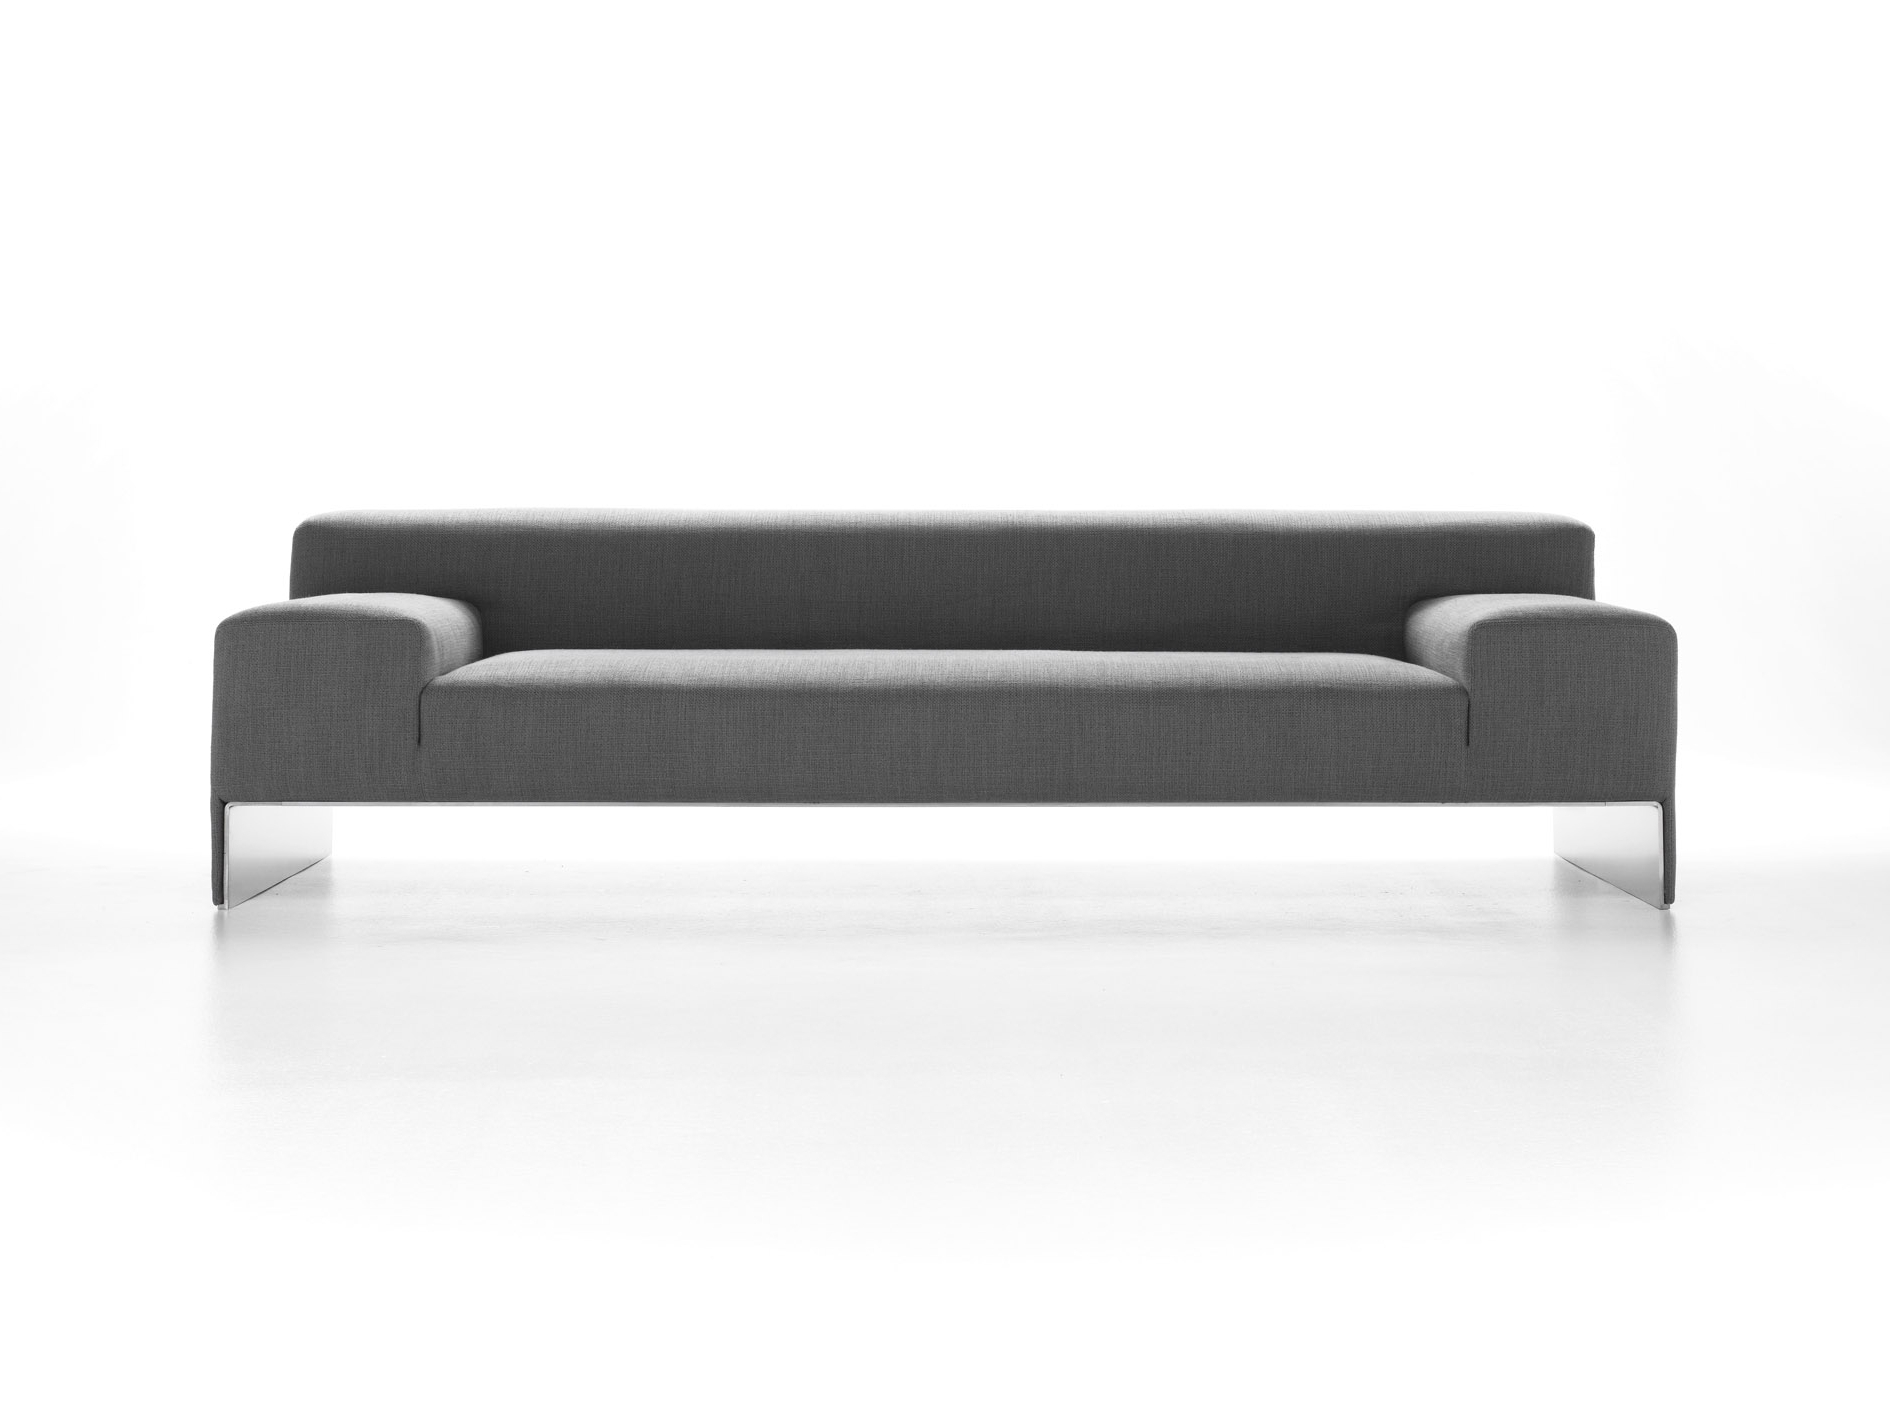 Preferred Long Modern Sofas With Regard To This Peculiar Identity Is Giventhe Thin Arch Shaped Frame From (View 15 of 20)